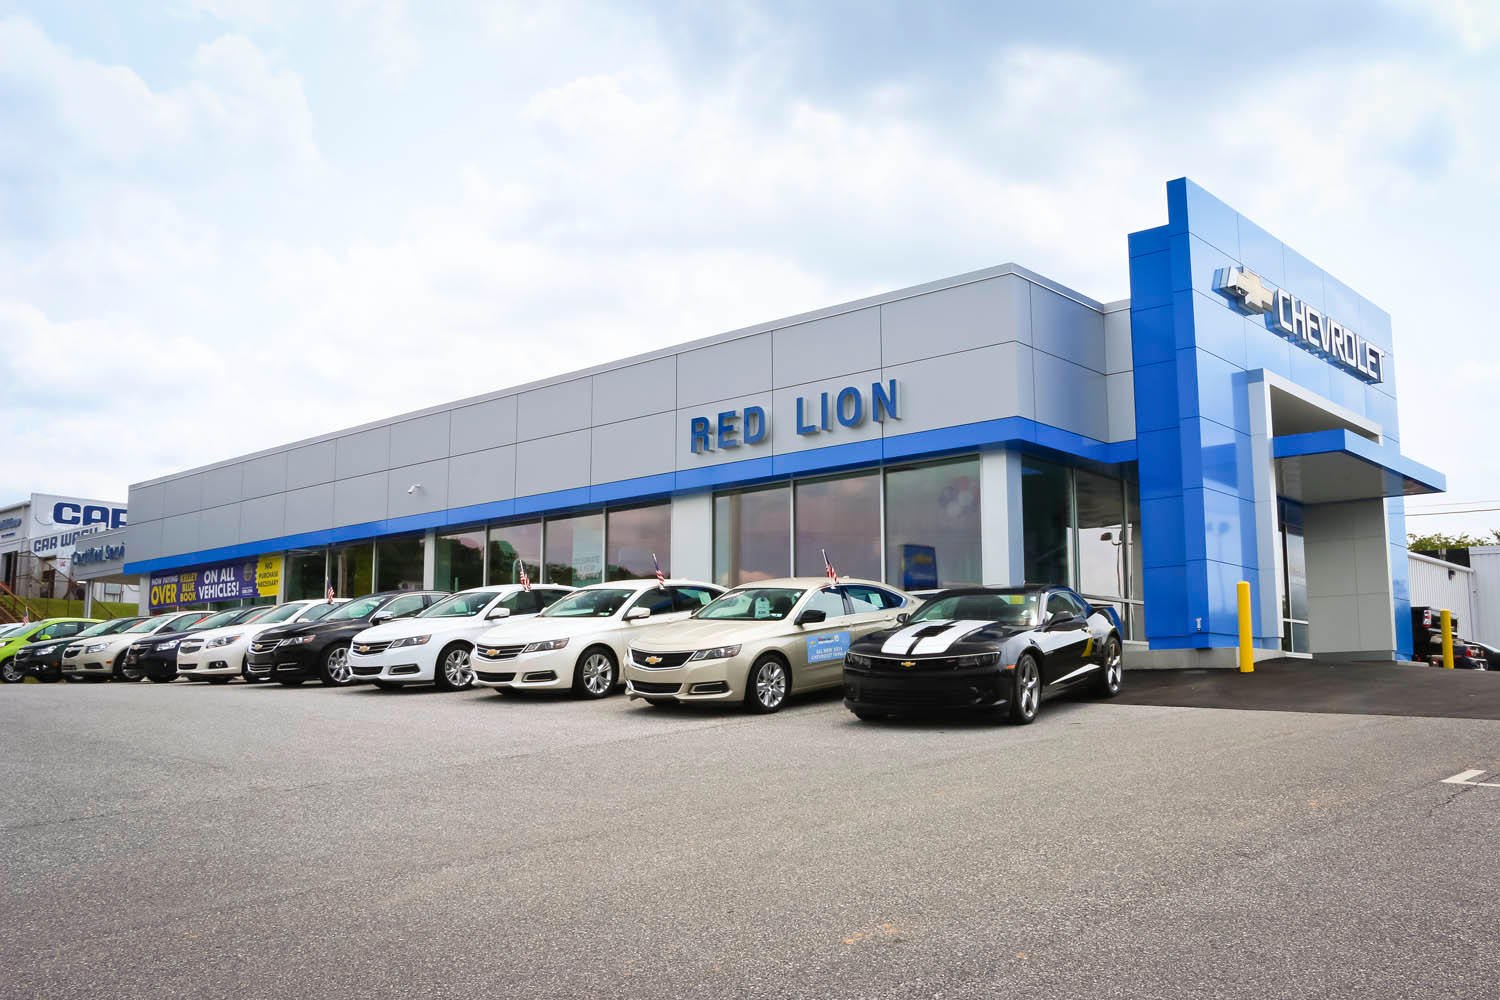 Red Lion Chevy - ad image